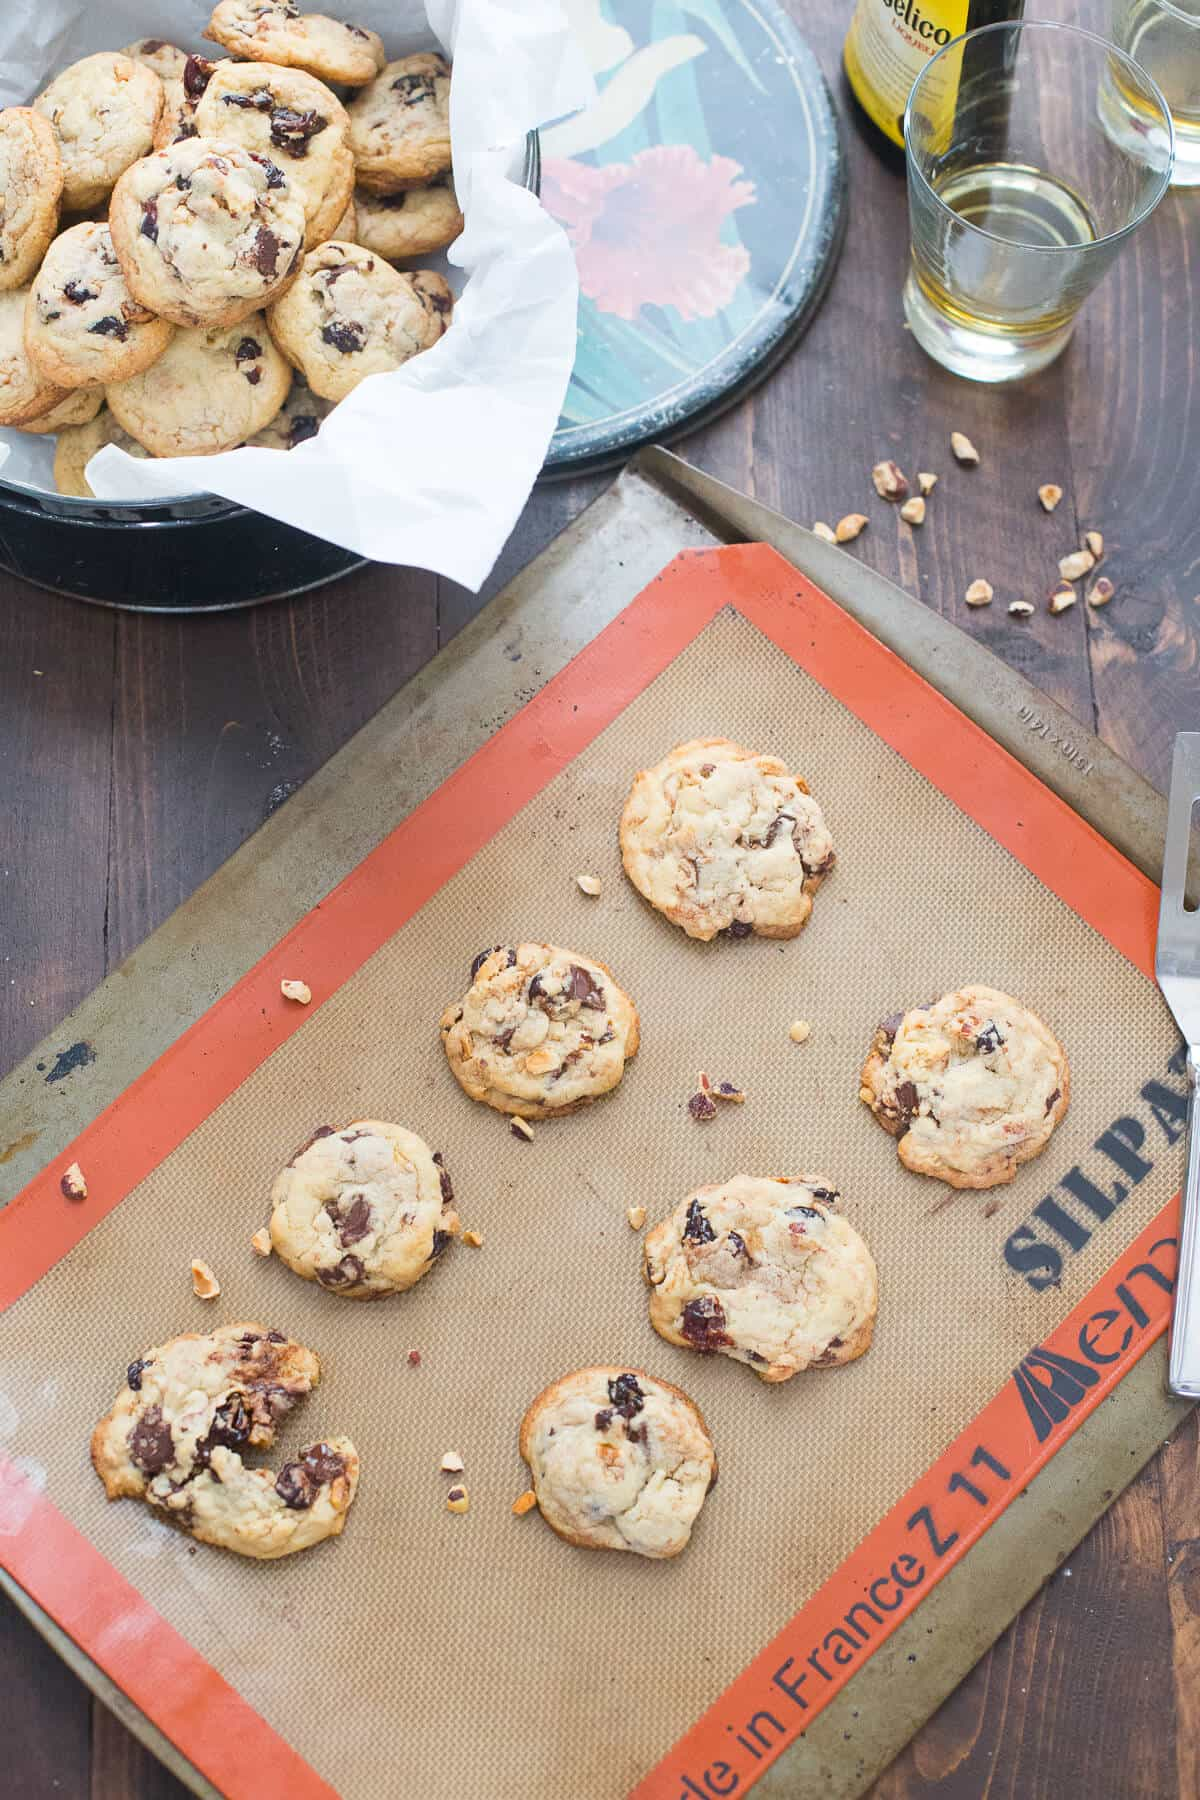 Dried cherry lovers are going to love these cherry chip cookies! The tart cherries, sweet chocolate and crunchy hazelnuts are an amazing combination!